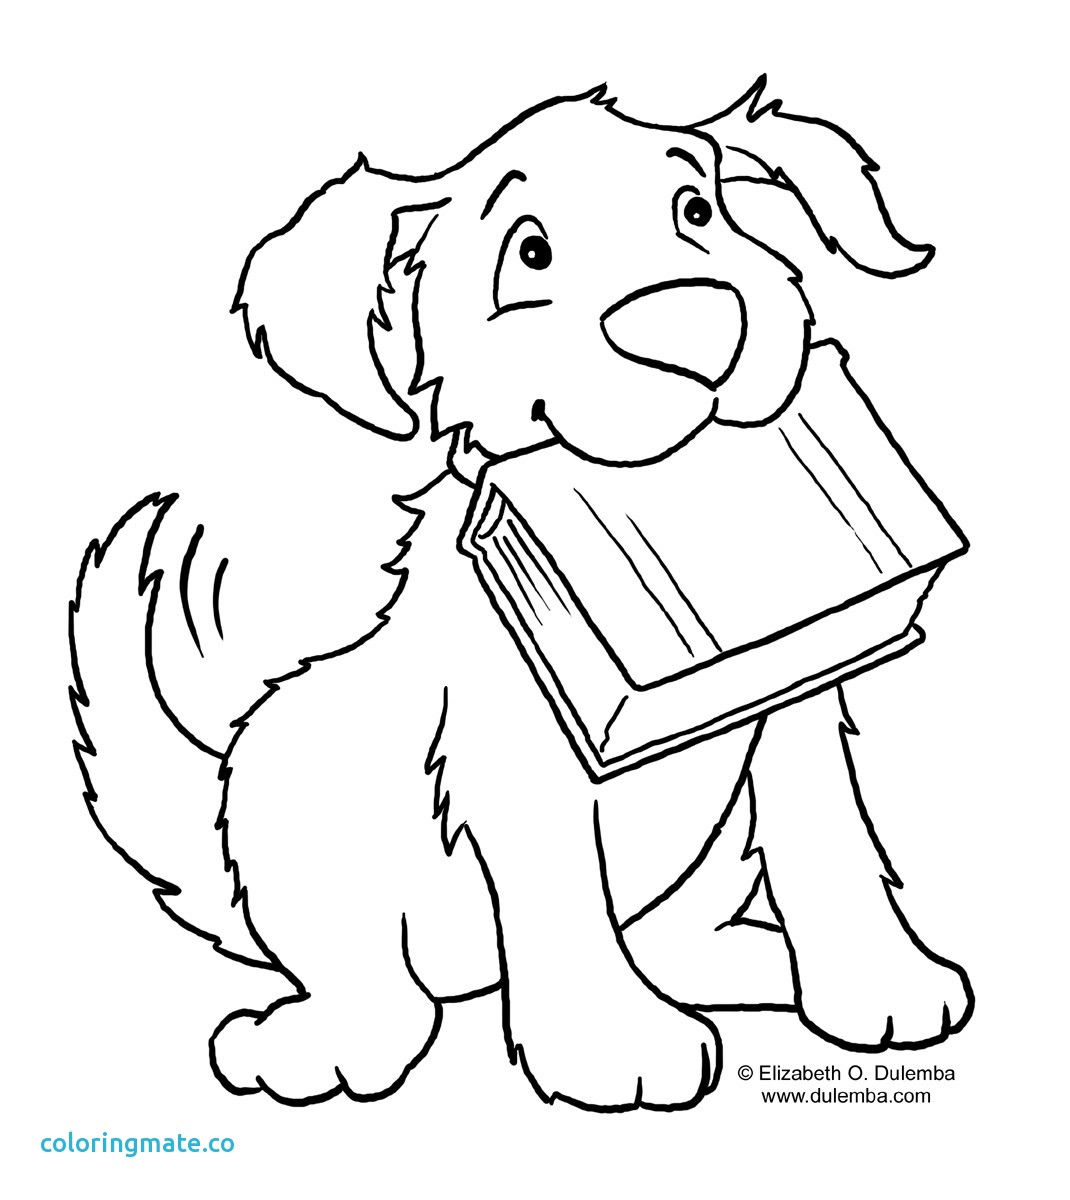 1070x1200 Big Coloring Pages Fresh Cute Dog Coloring Pages Free Printable